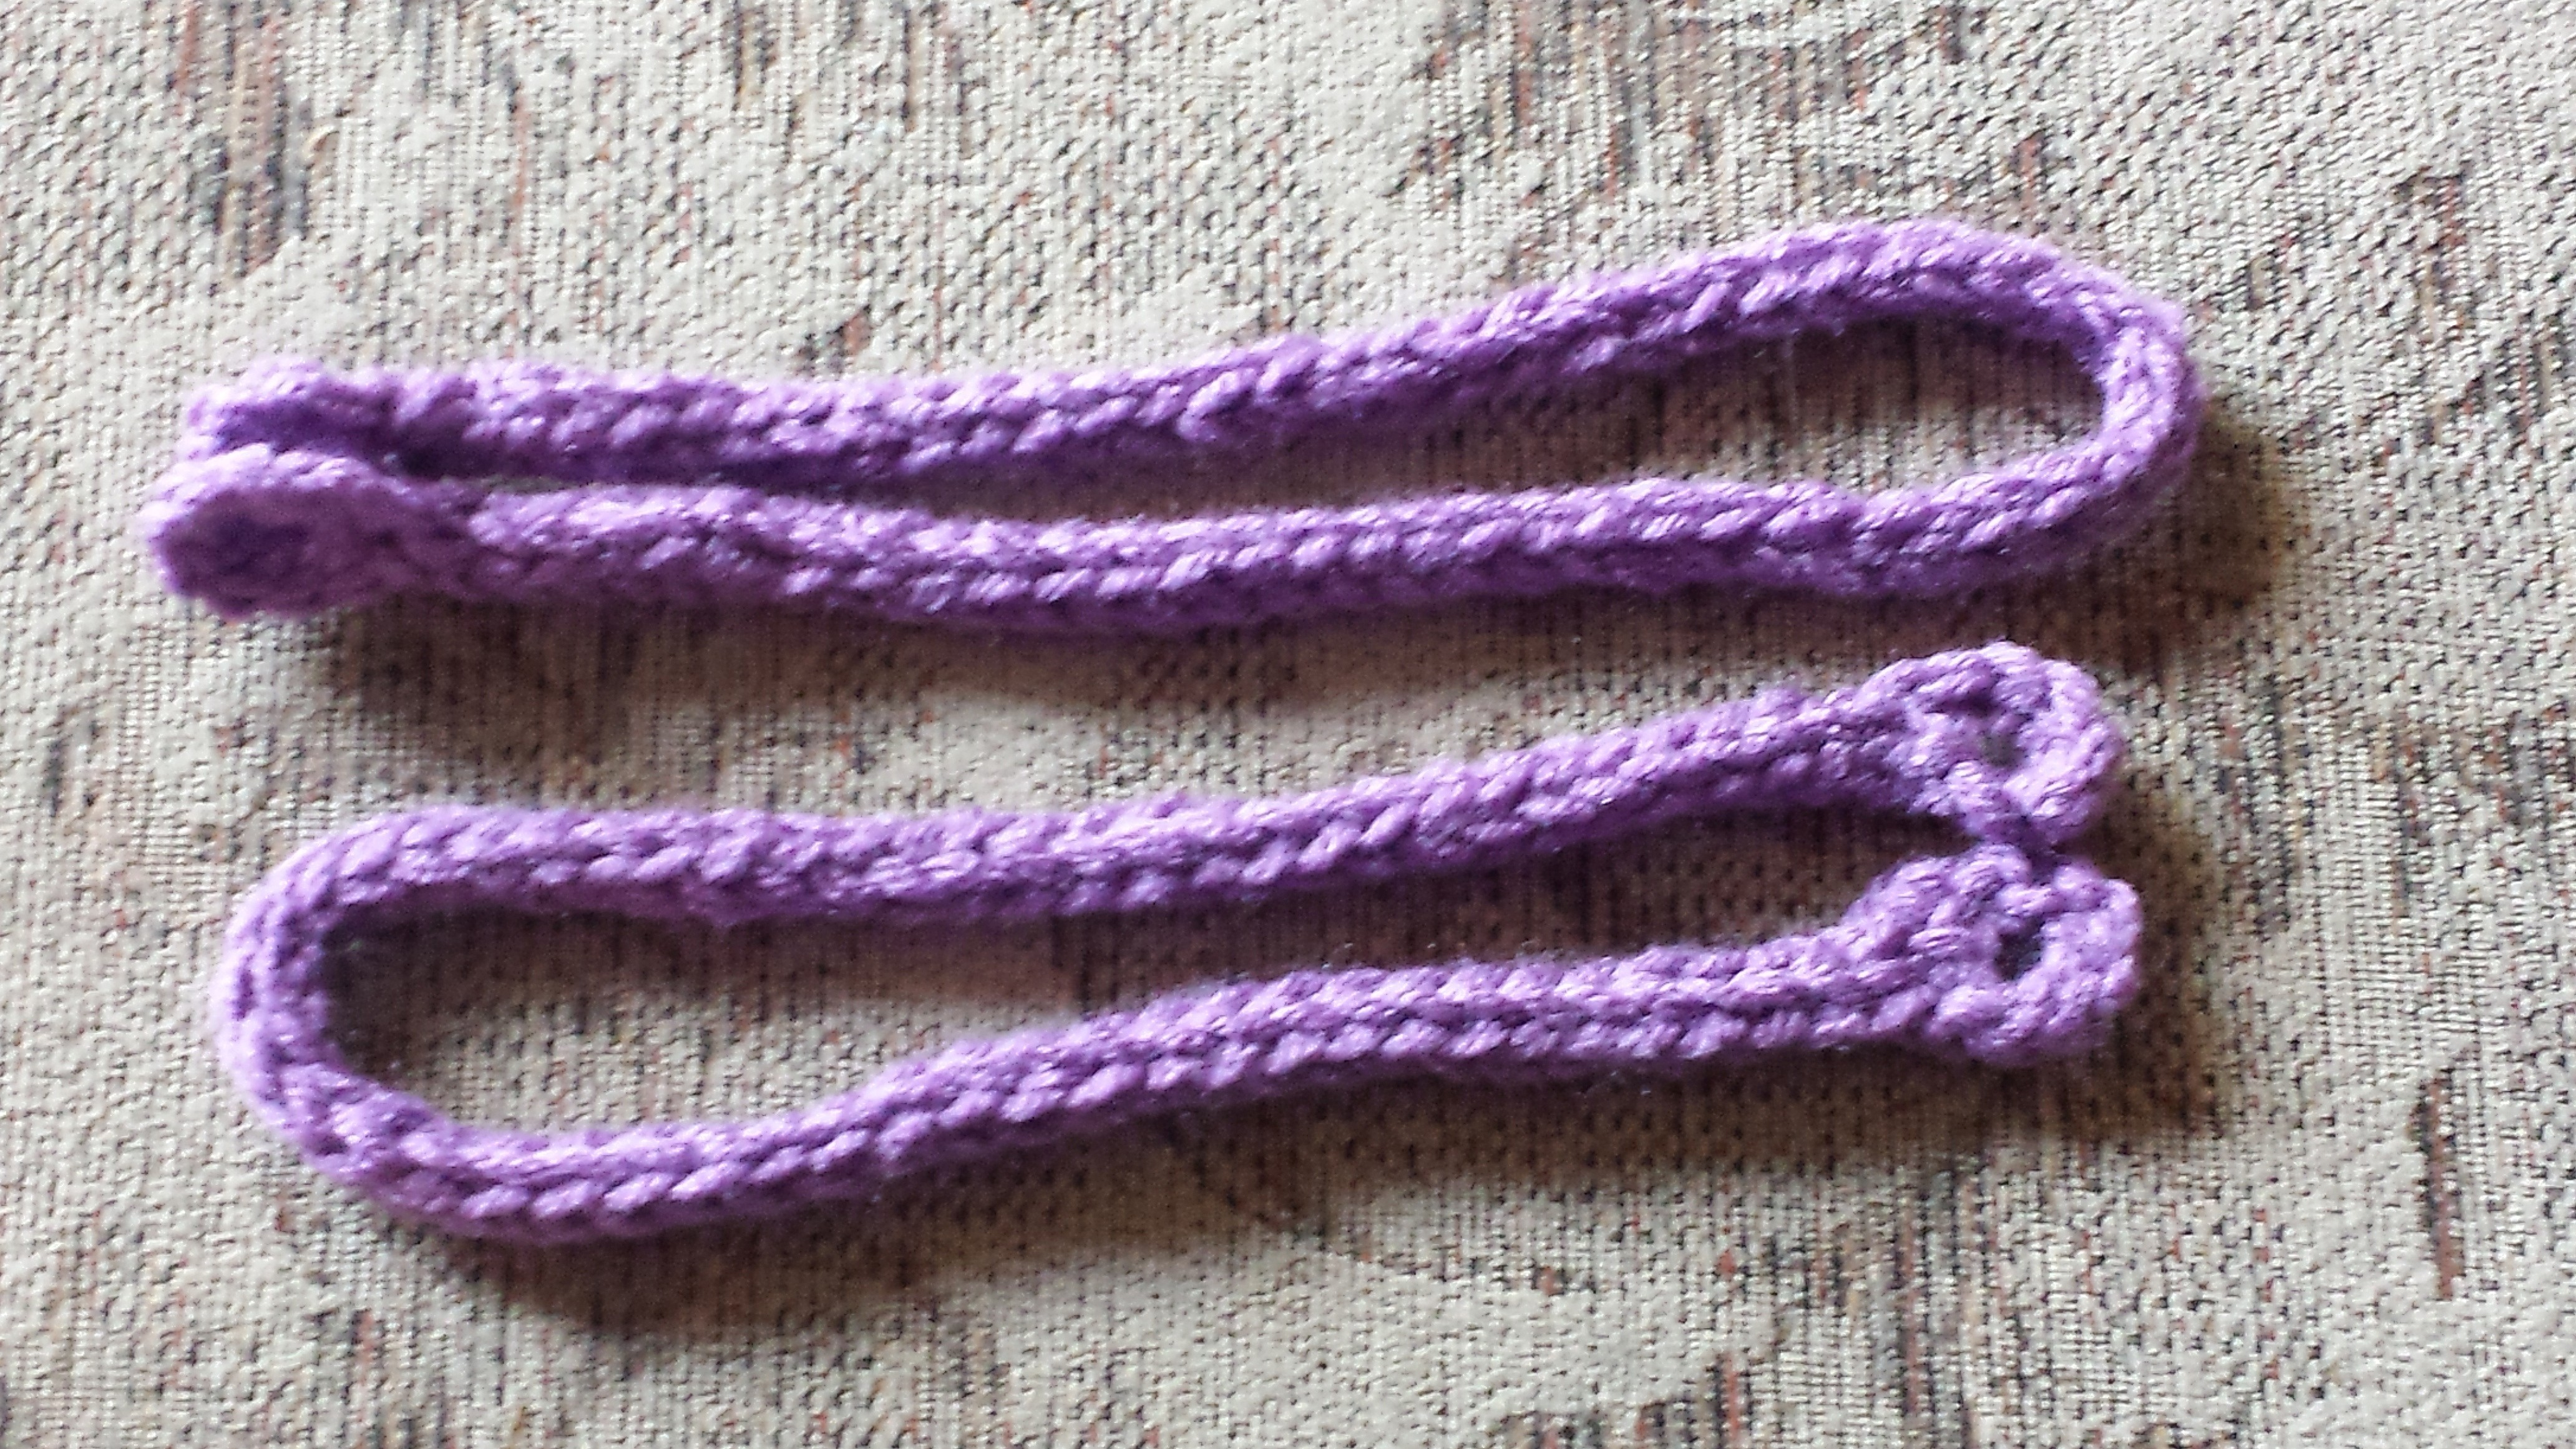 Crochet I – Cord Curtain Tie Backs Tiebacks – KarenGlasgowFollettDesigns